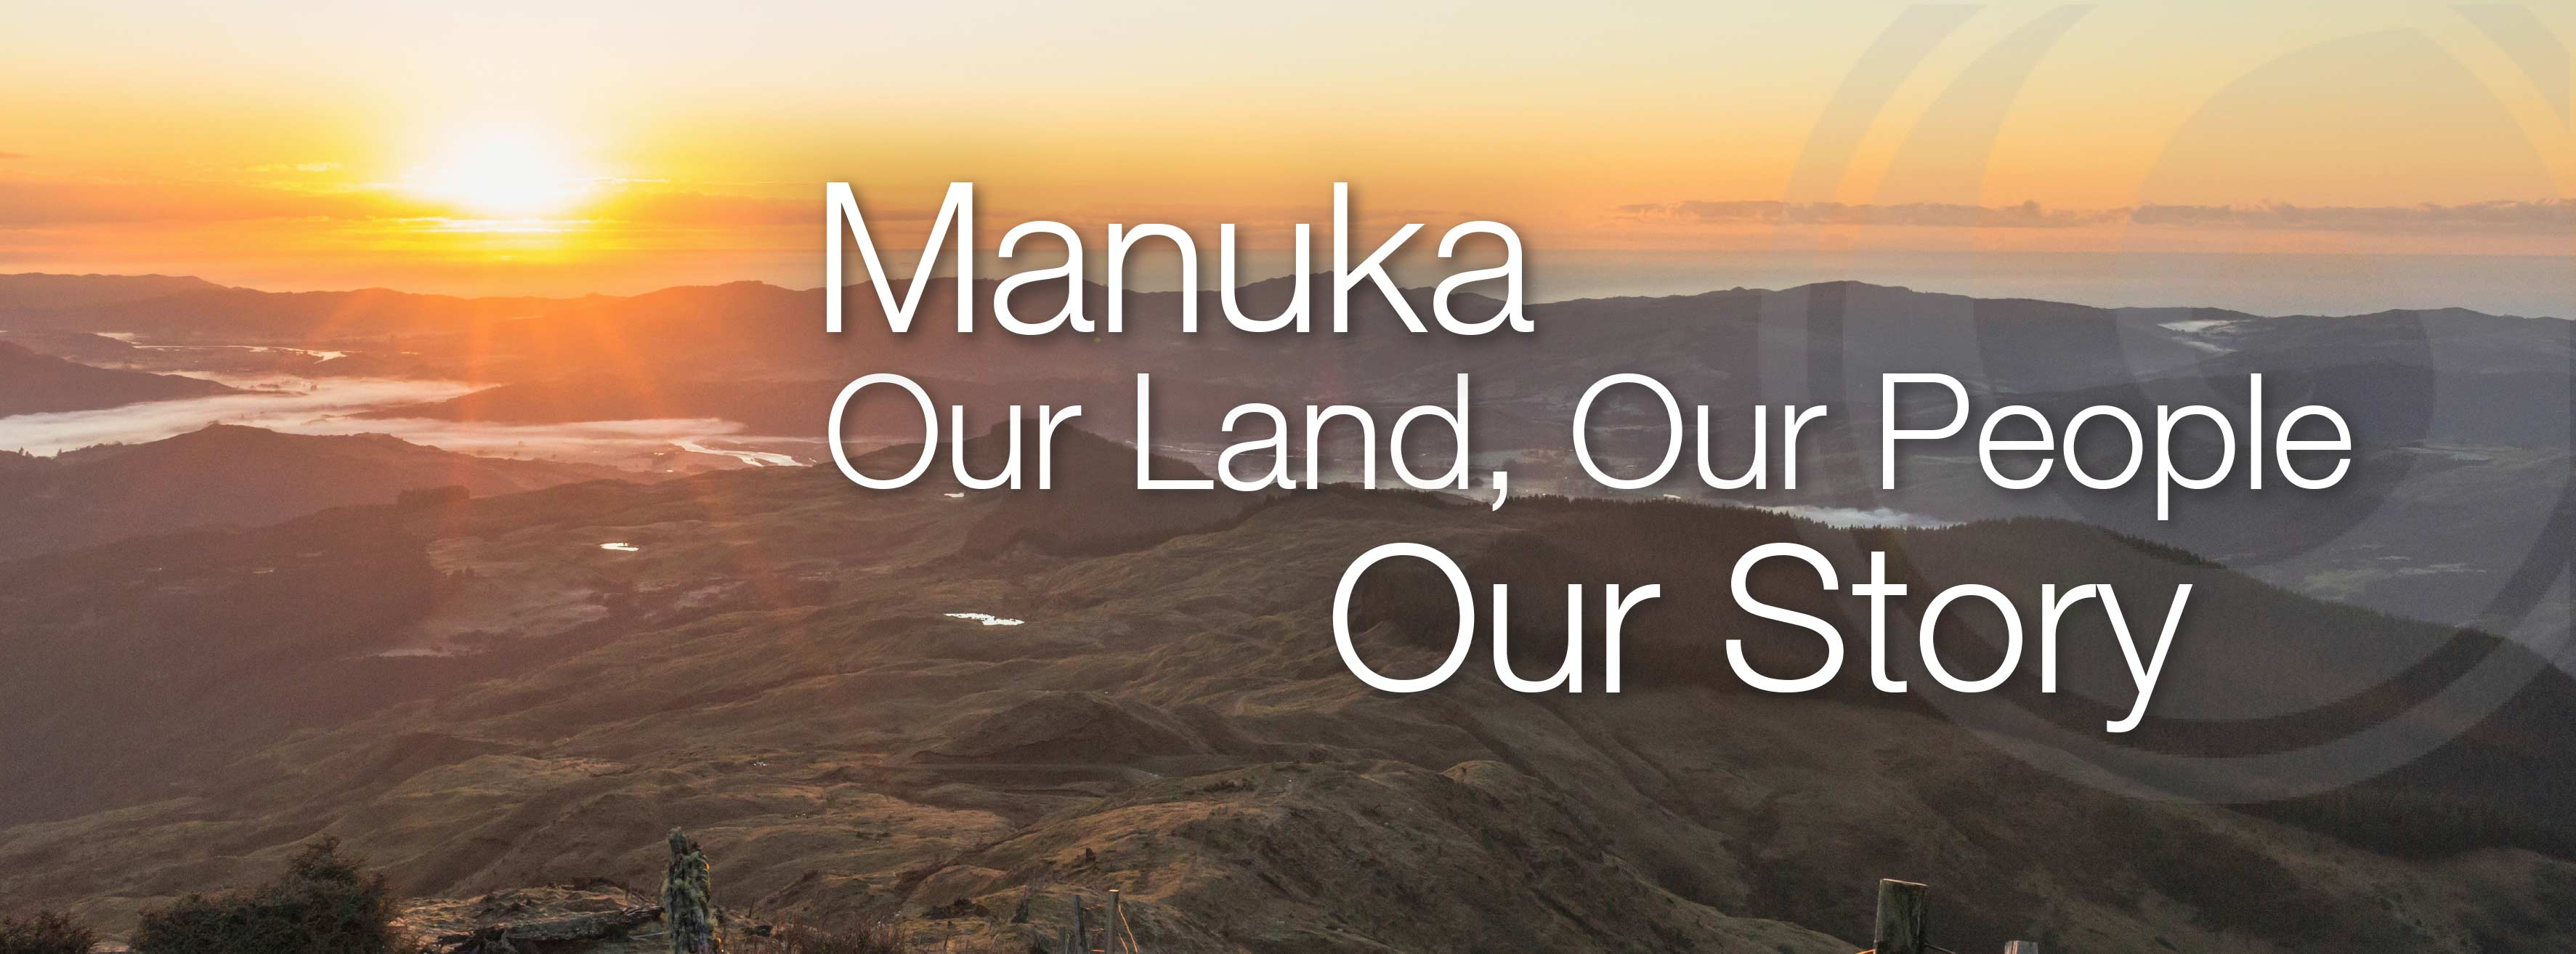 Manuka, our land, our story, our people